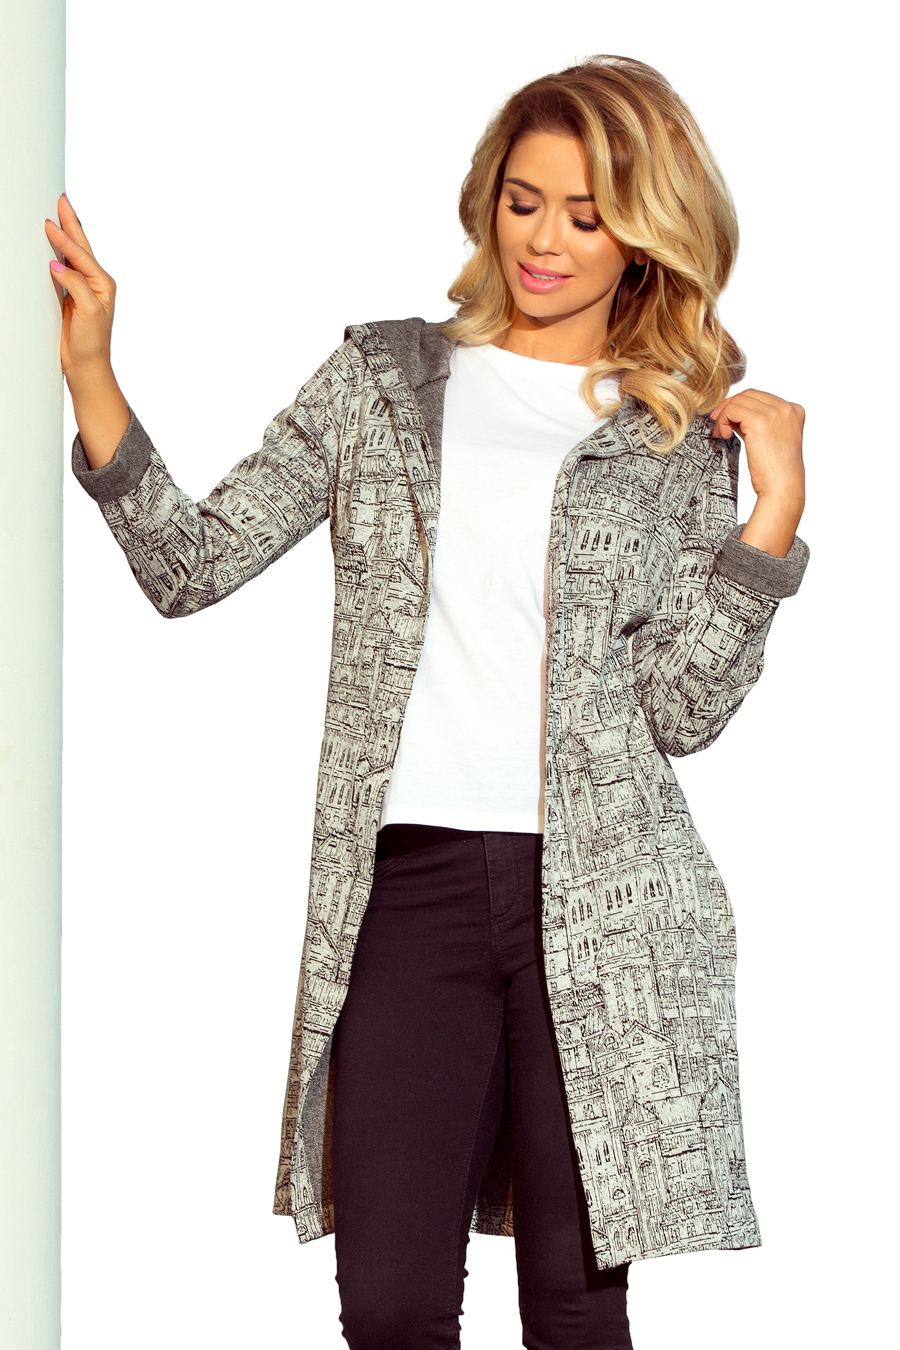 218-1 Coat with hood and pockets - city